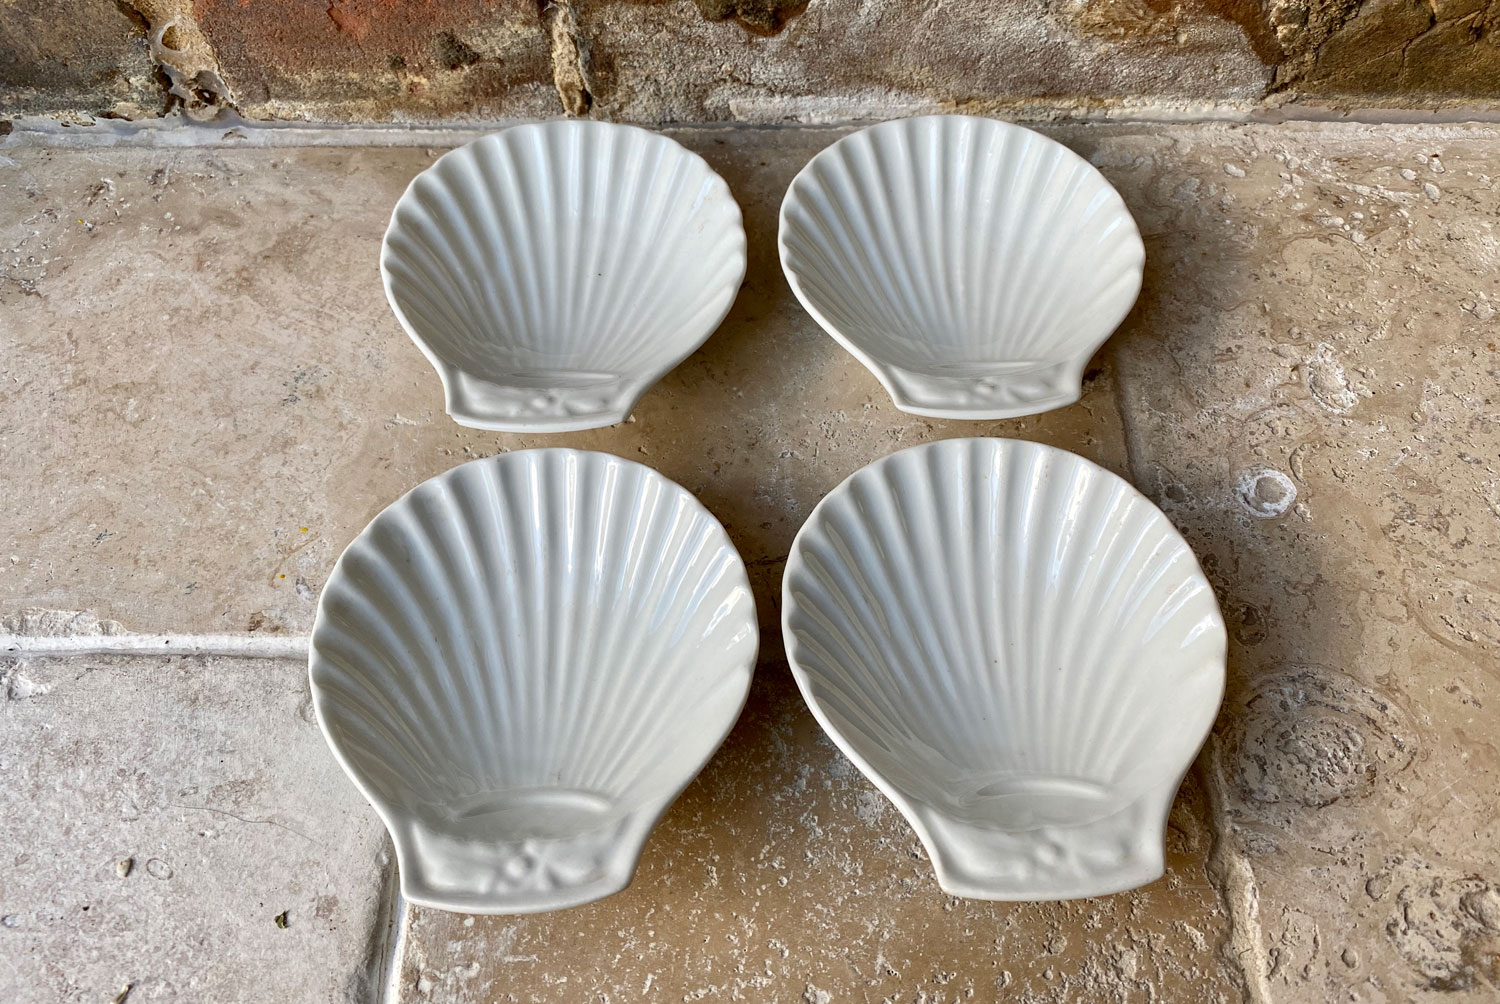 antique 19th century pillivuyt mehun white ironstone porcelain coquille st jacques scallop shell dishes